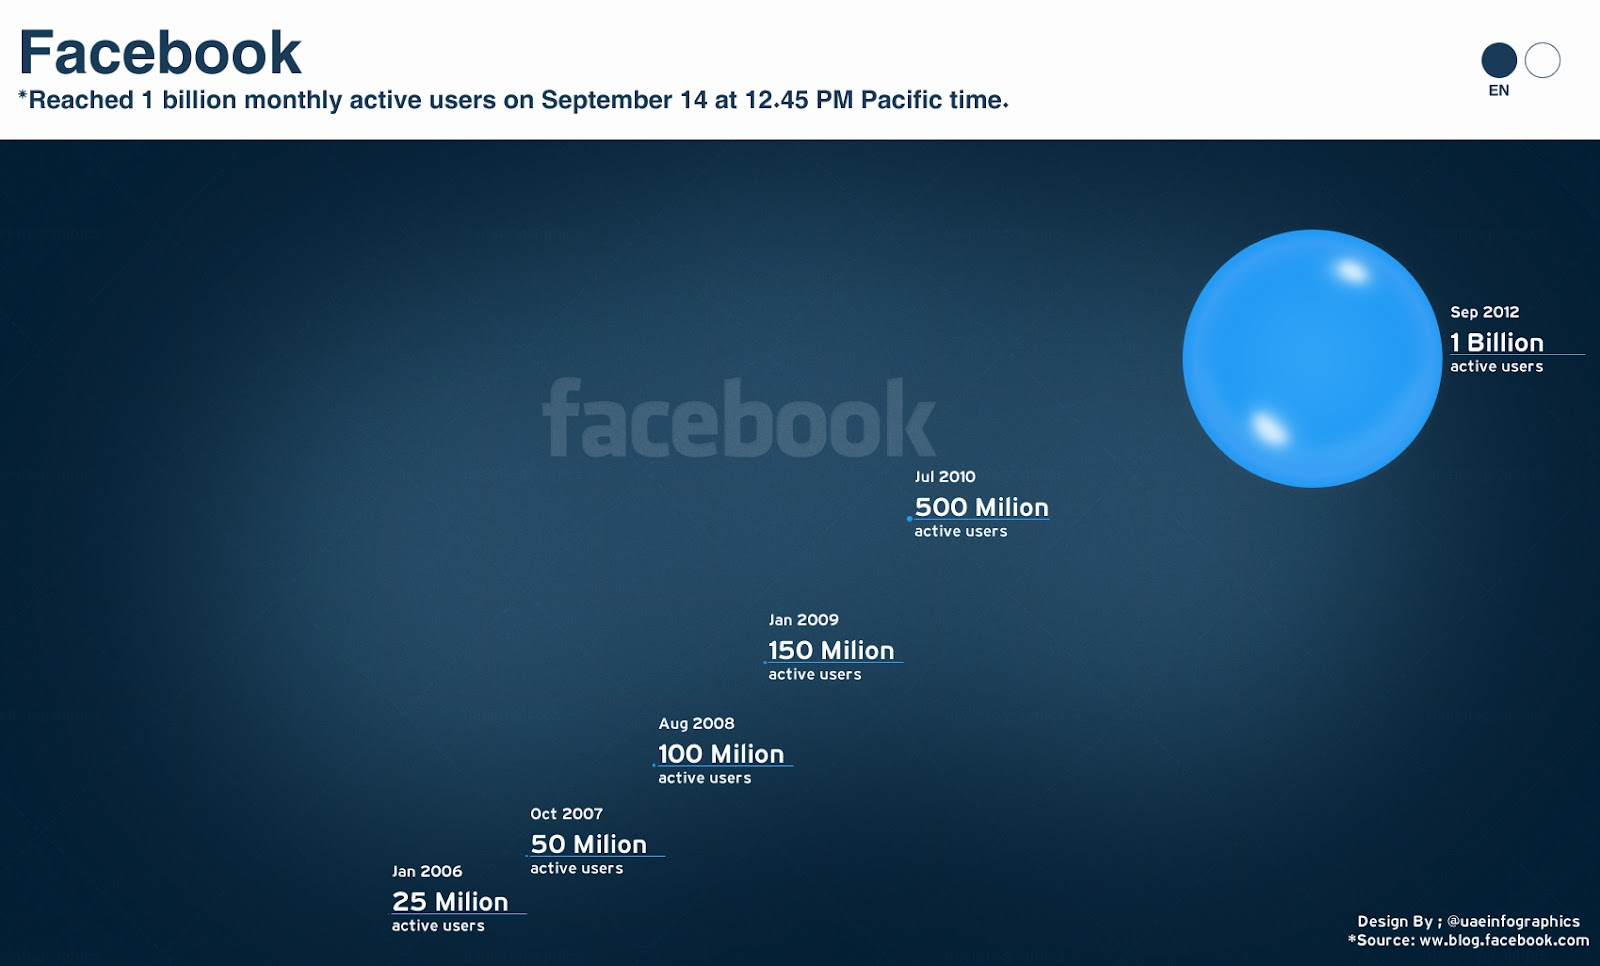 Facebook Hits 1 Billion Users [INFOGRAPHIC]